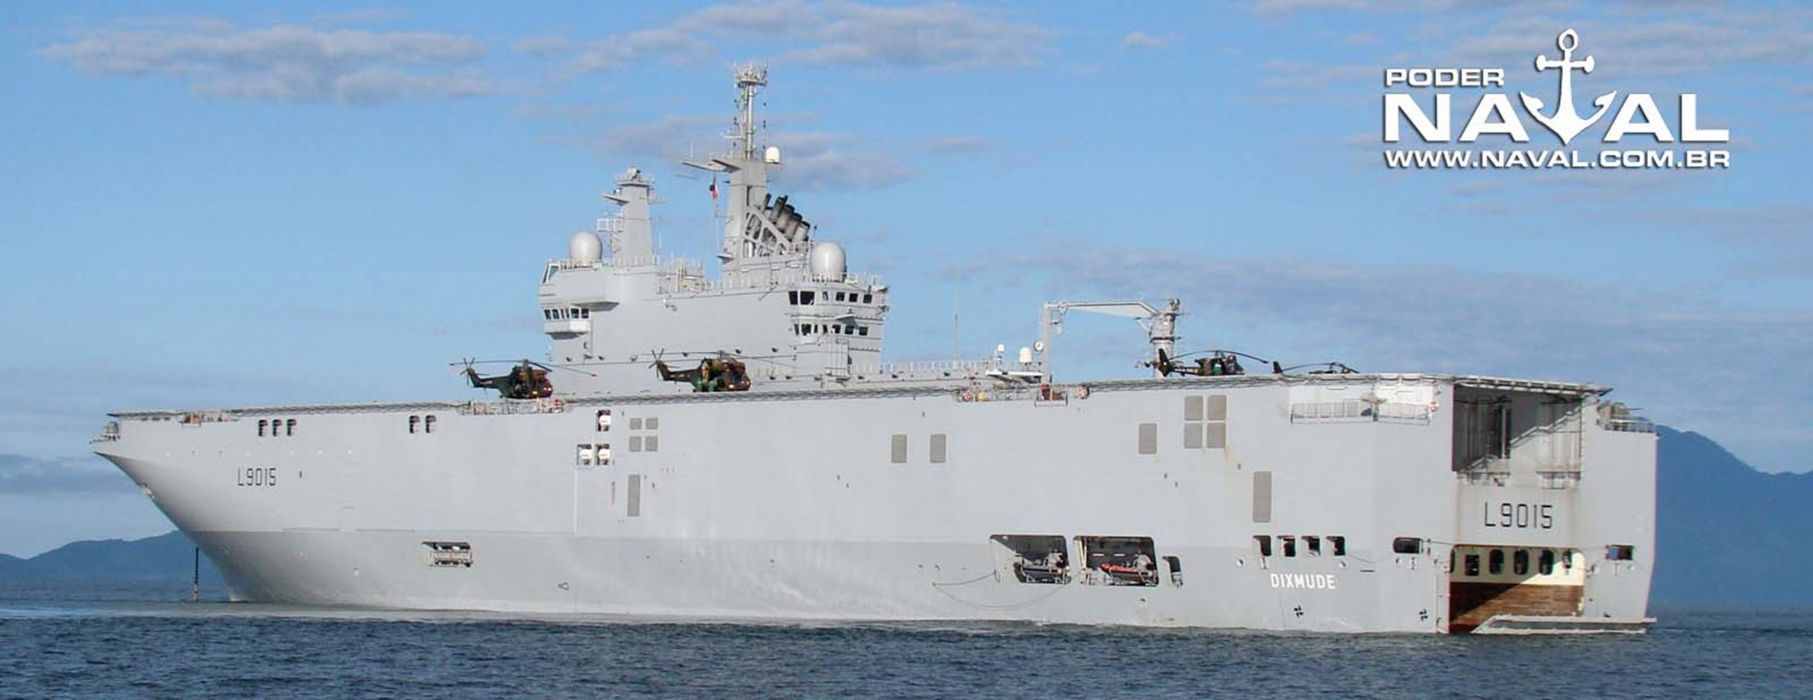 BPC warship navy ship war France 4000x1545 wallpaper